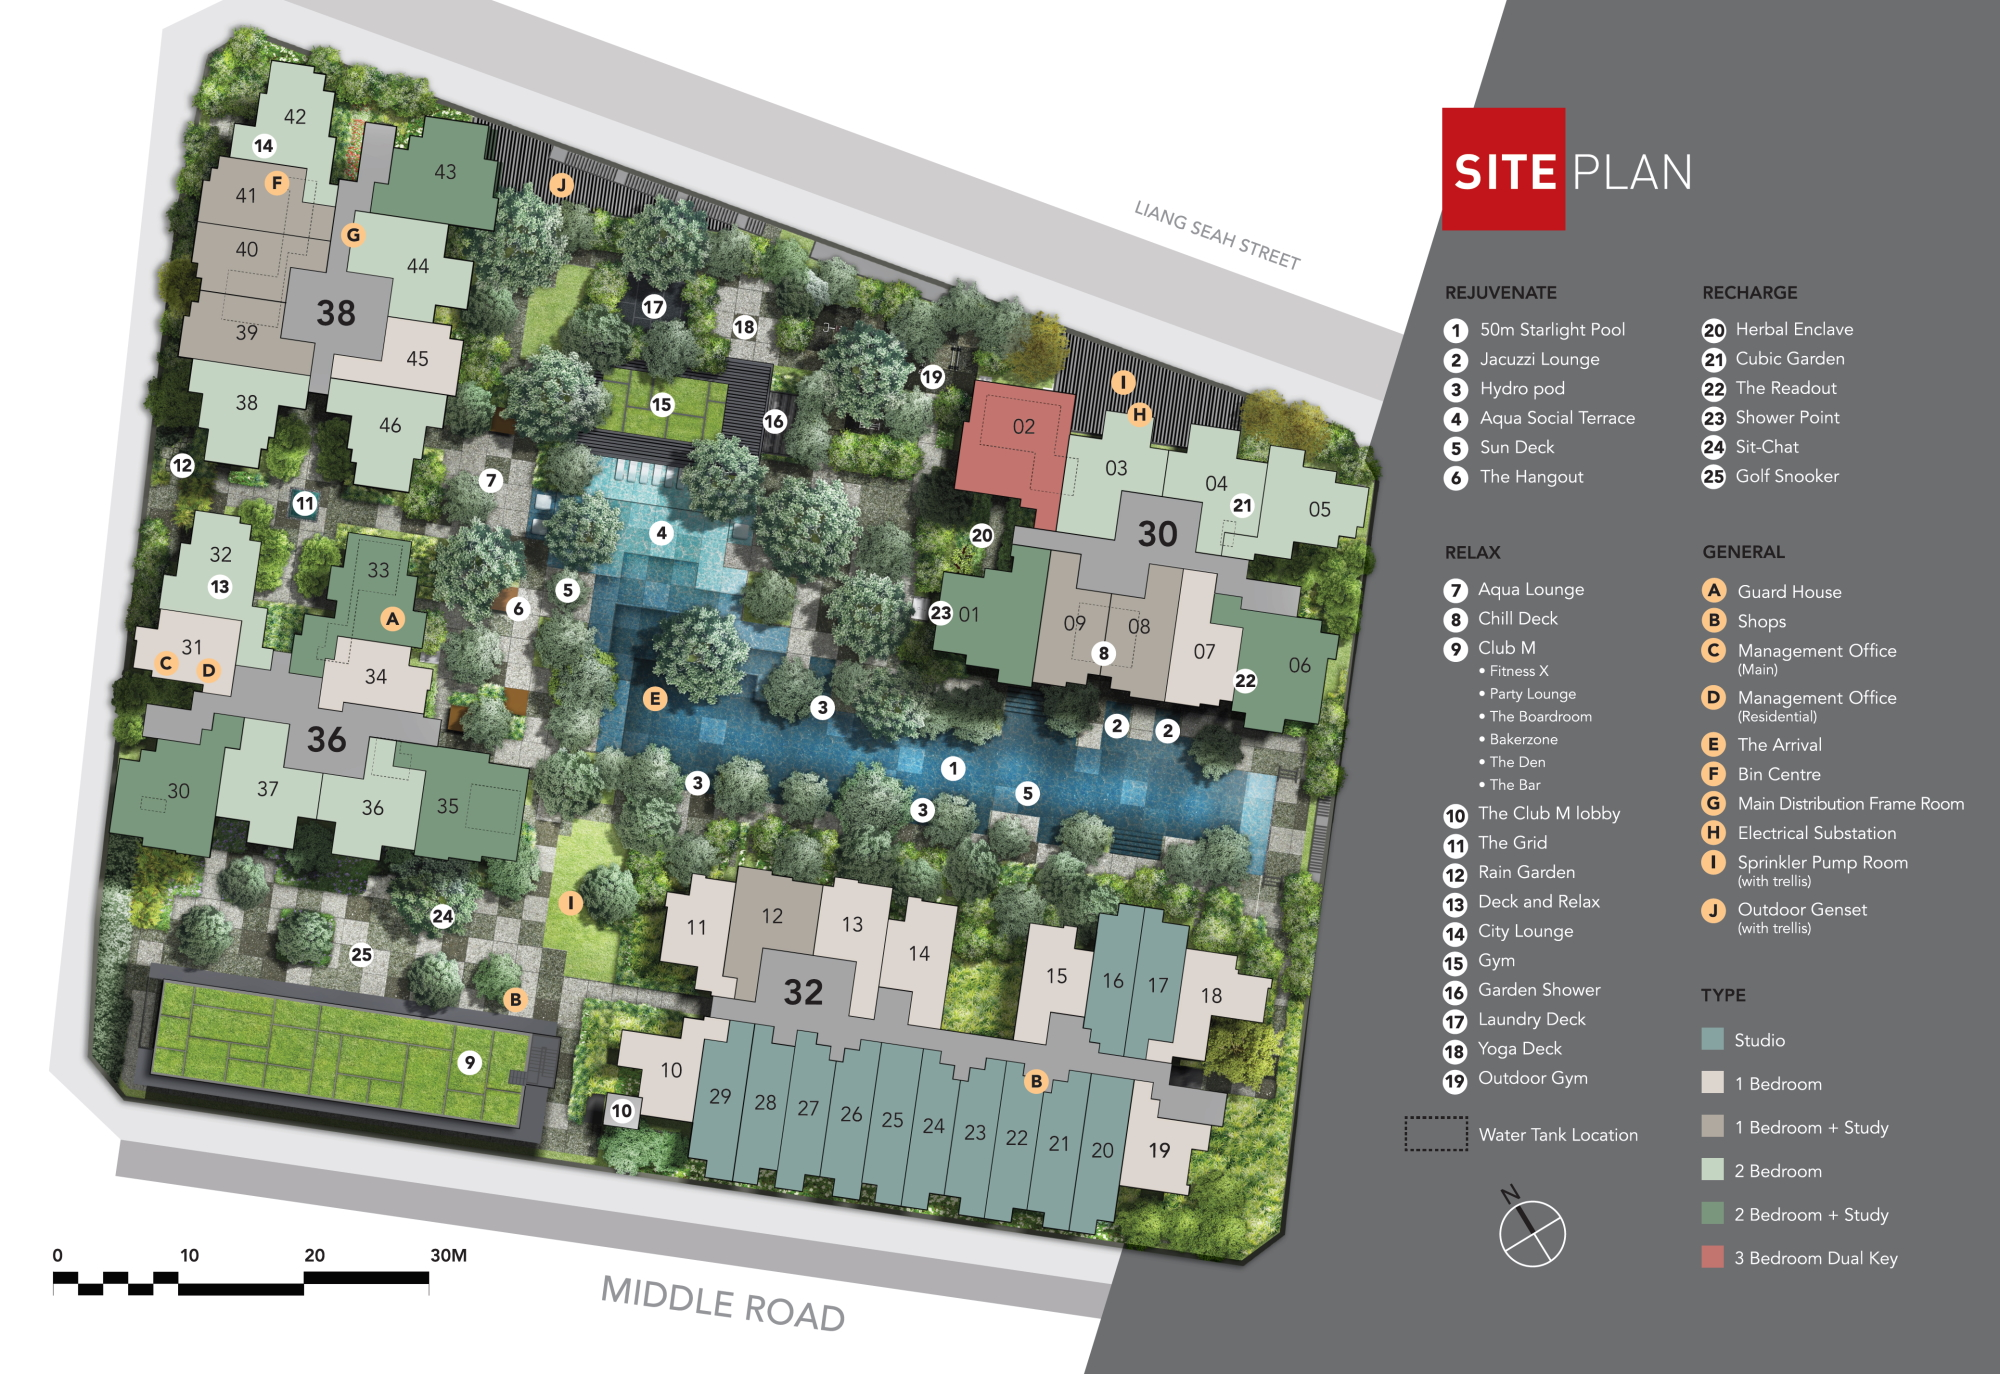 The M site plan